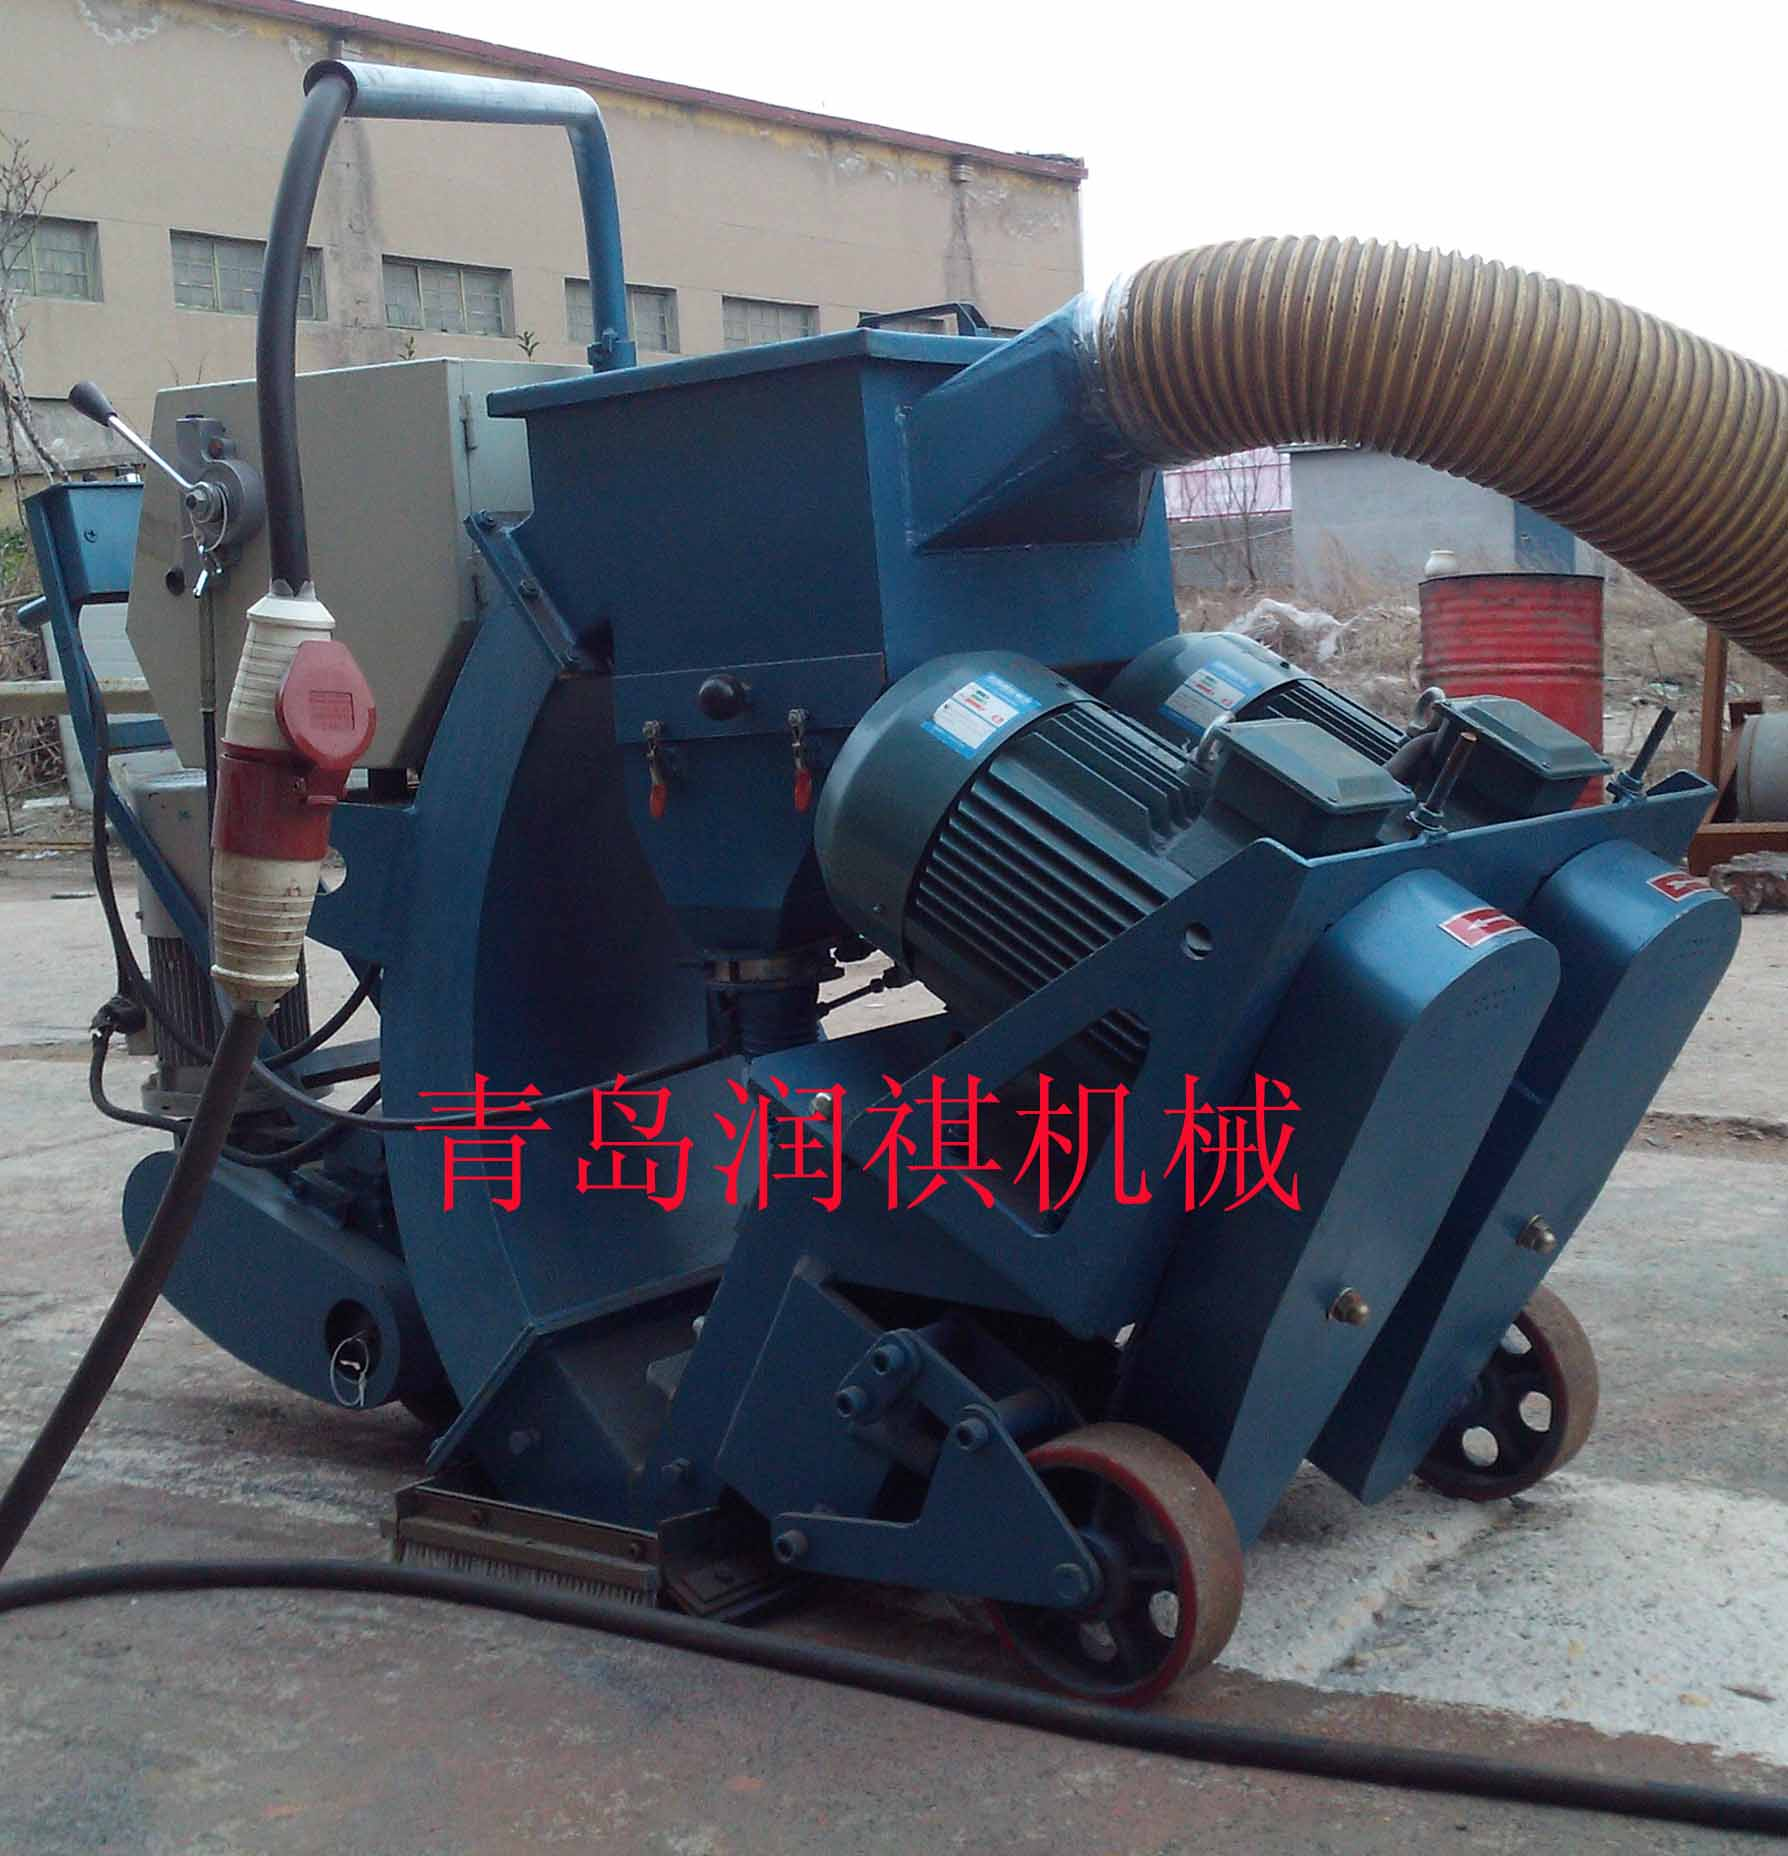 Provide factory type shot blasting machine